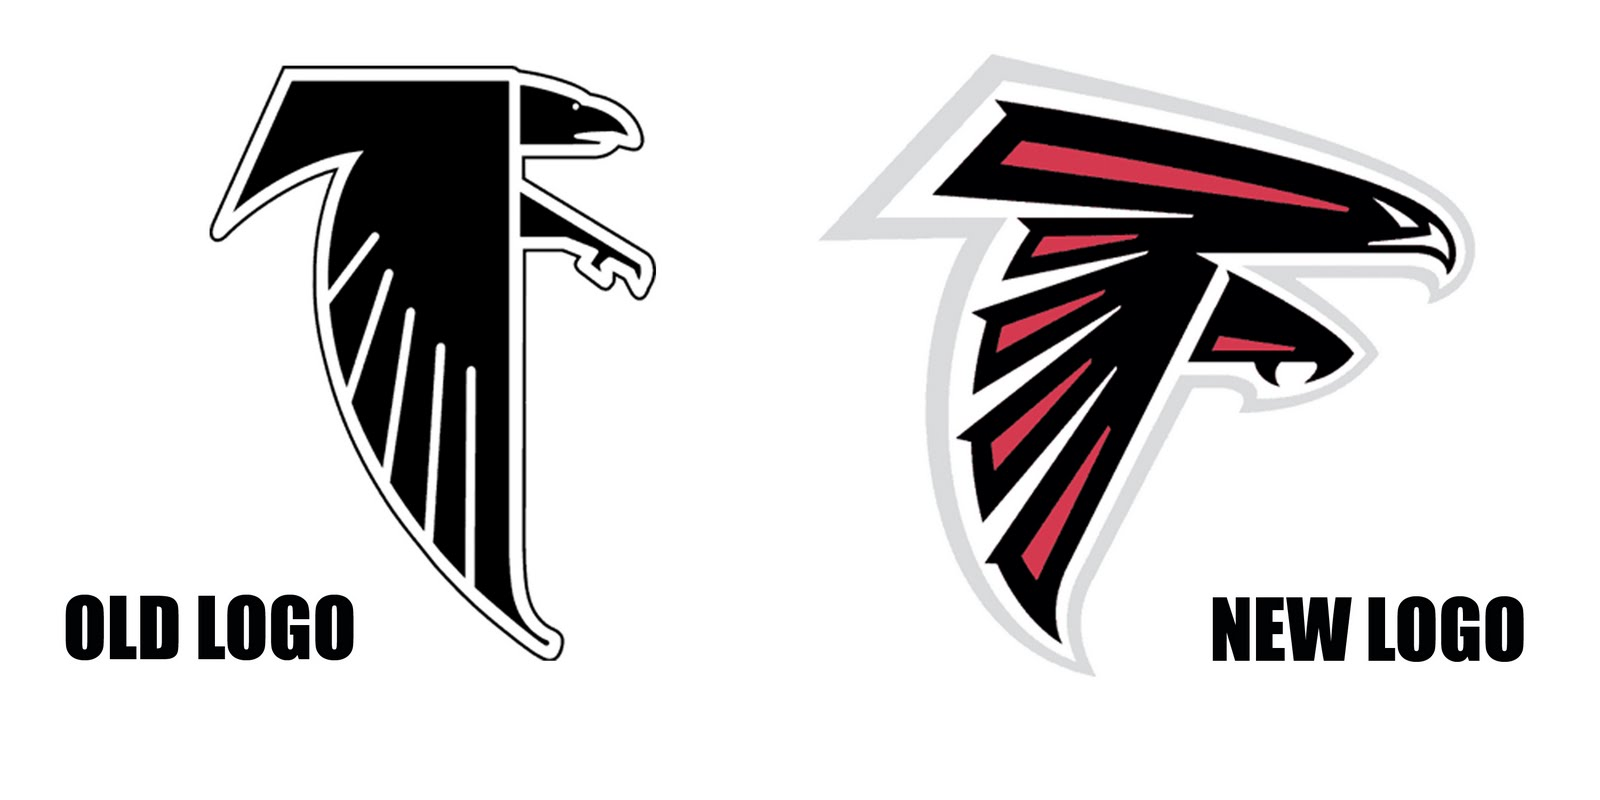 The look ranking nfl logos 28 falcons voltagebd Choice Image